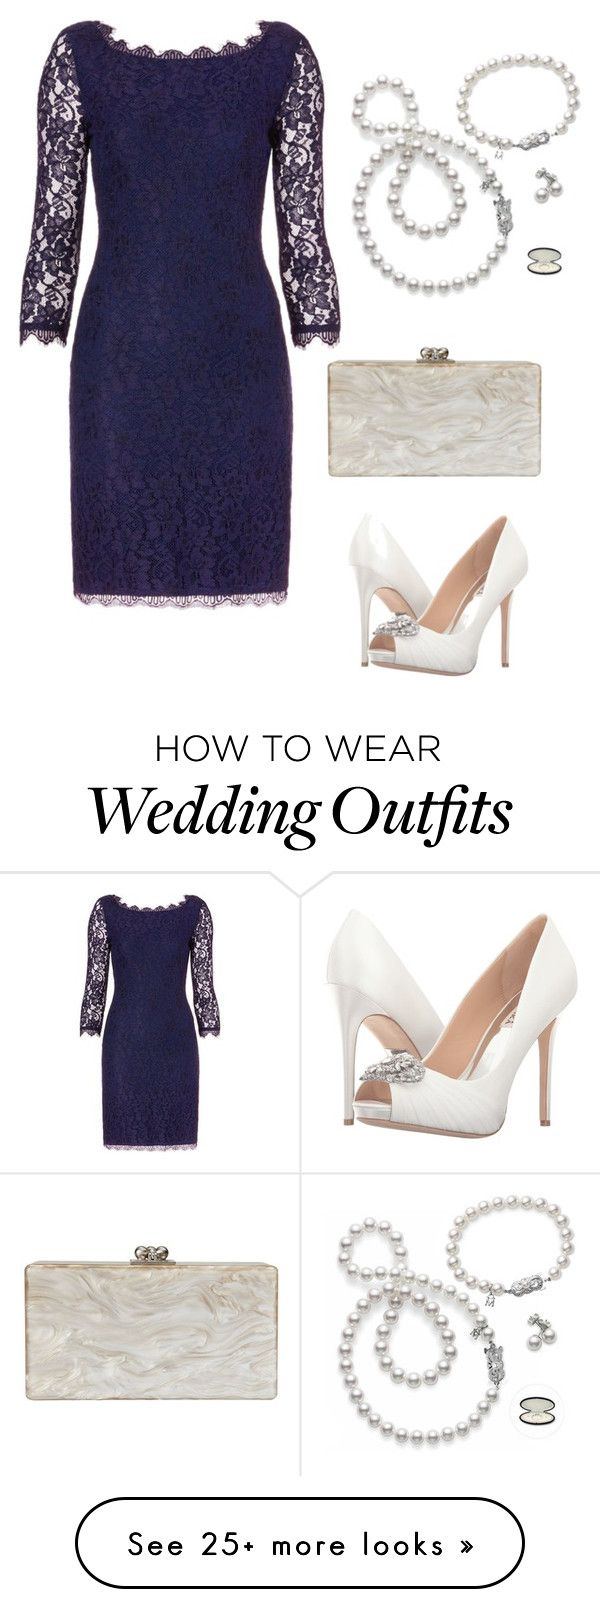 """Wedding Guest"" by hkaplan on Polyvore featuring Diane Von Furstenberg, Mikimoto, Edie Parker and Badgley Mischka"